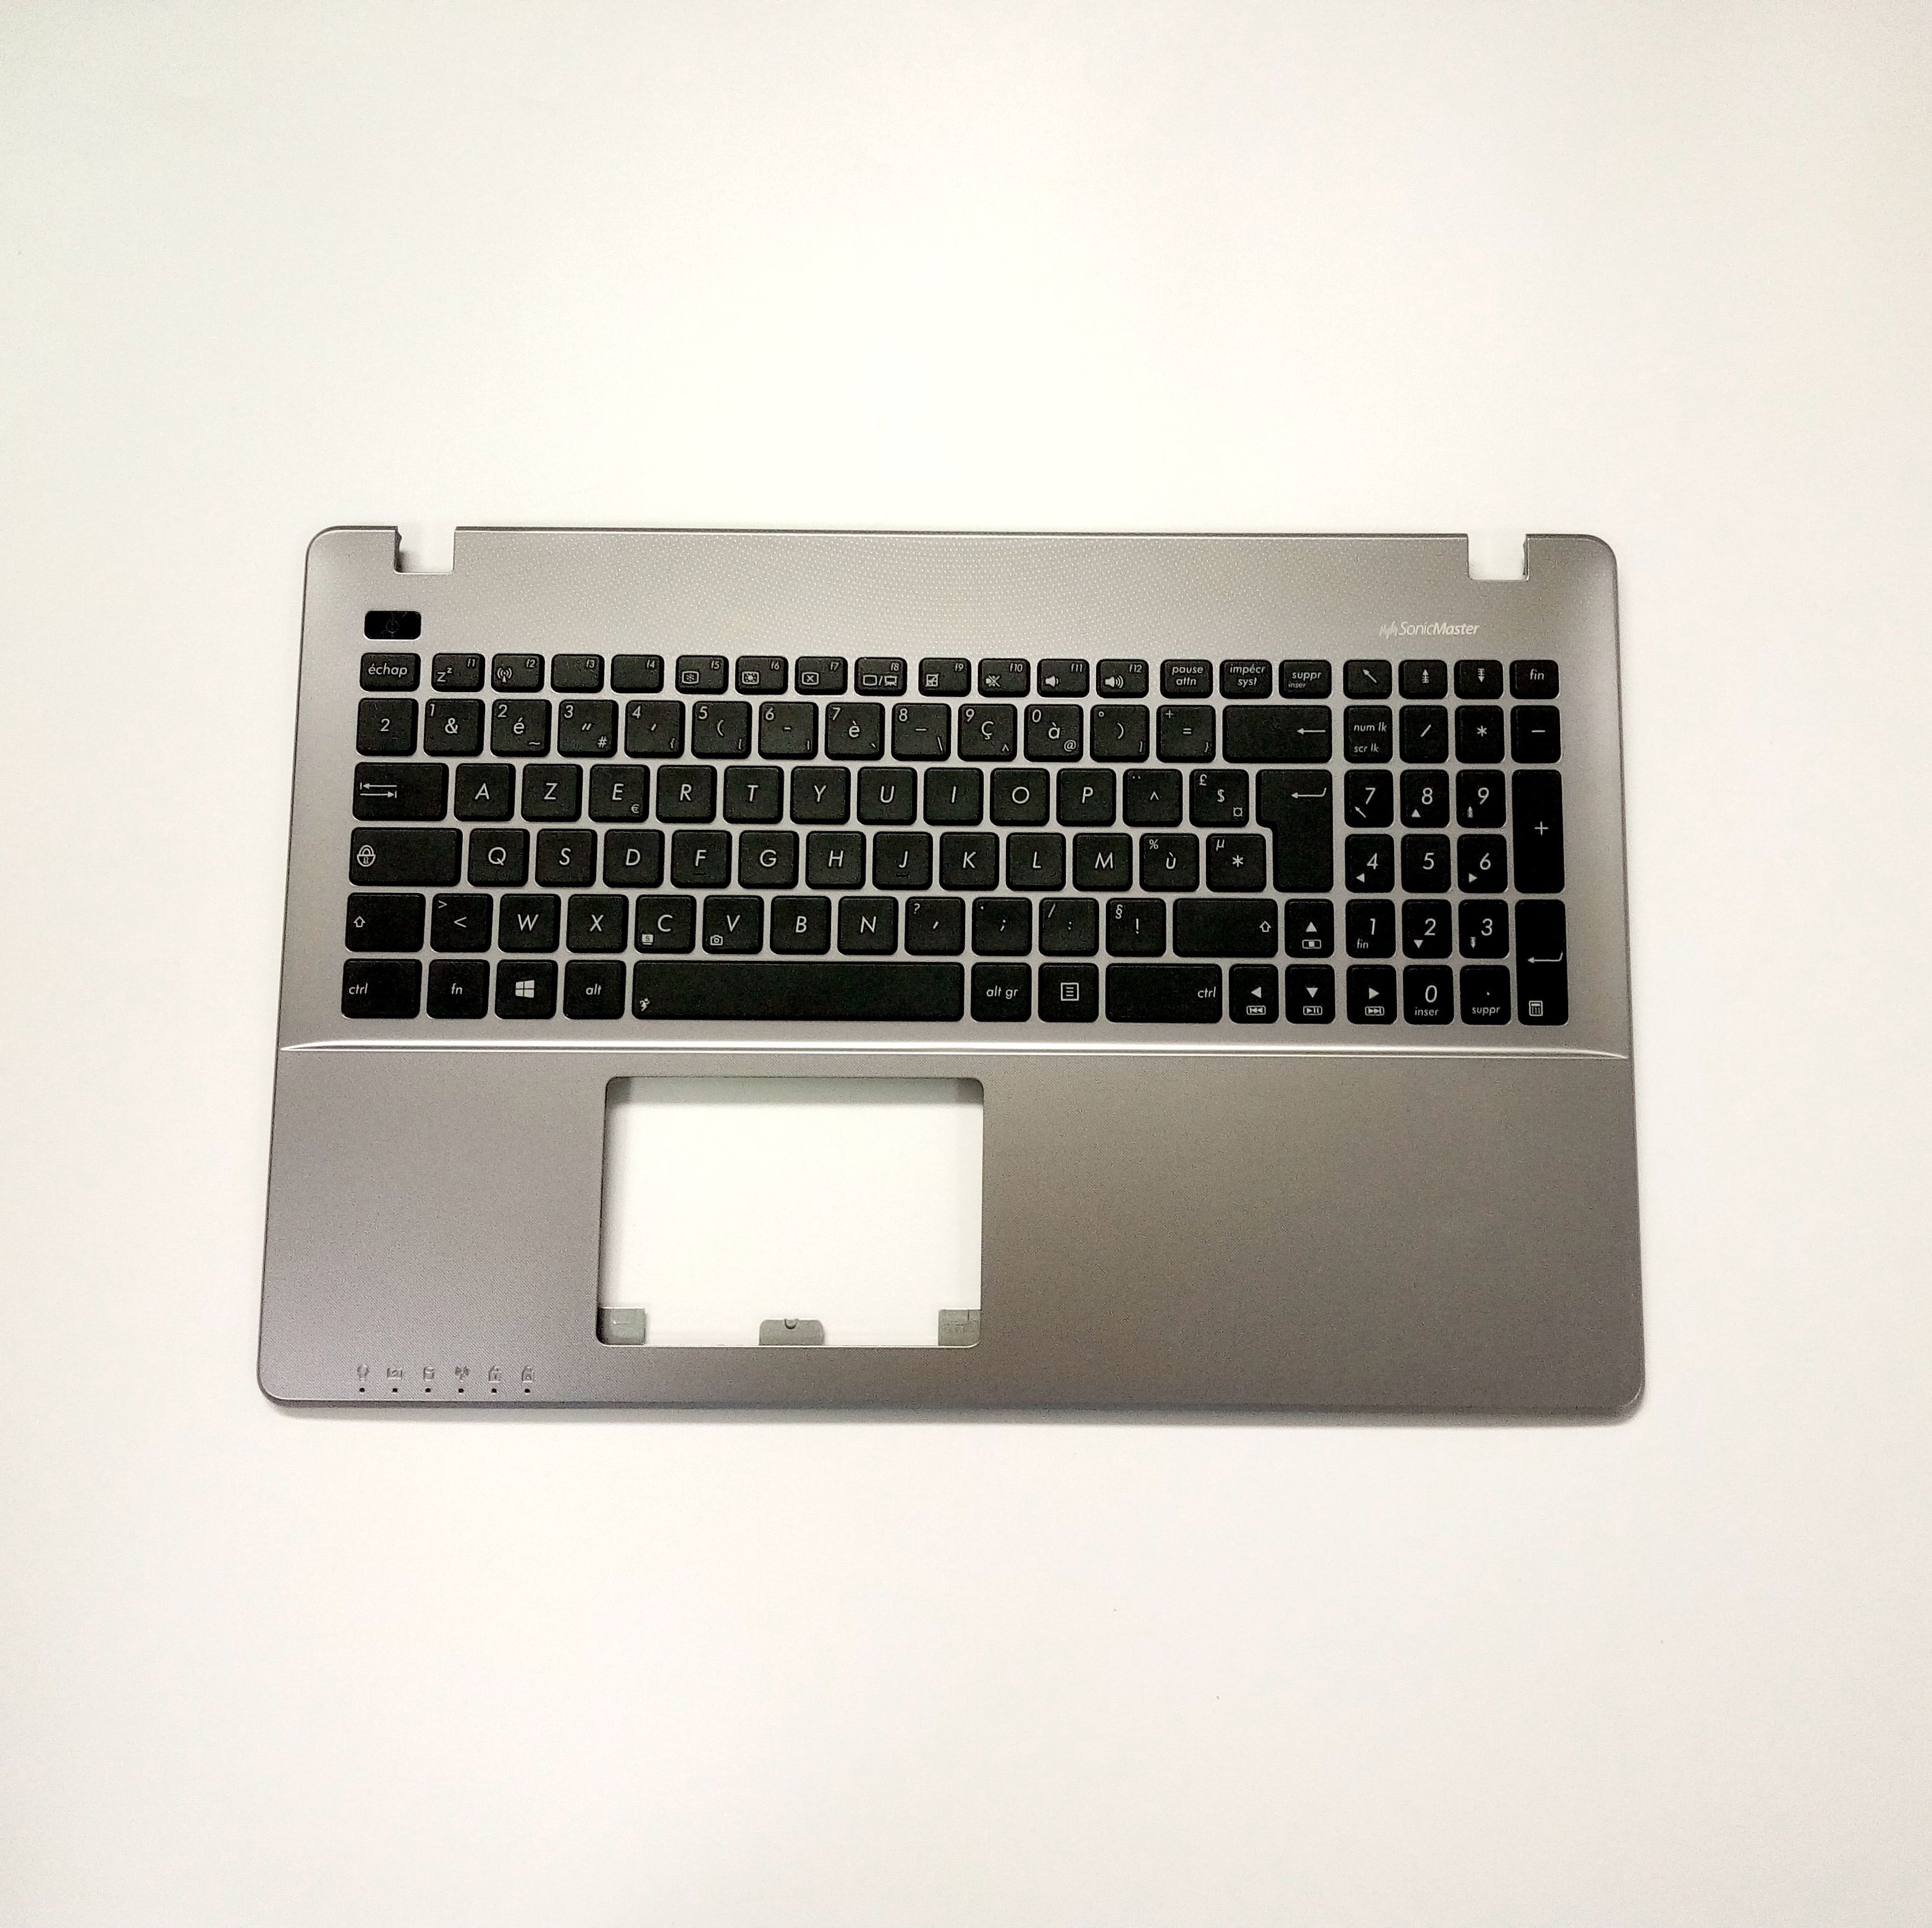 New Clavier for Asus R510C R510CA R510CC Keyboard Topcase with Grey palmrest Genuine French